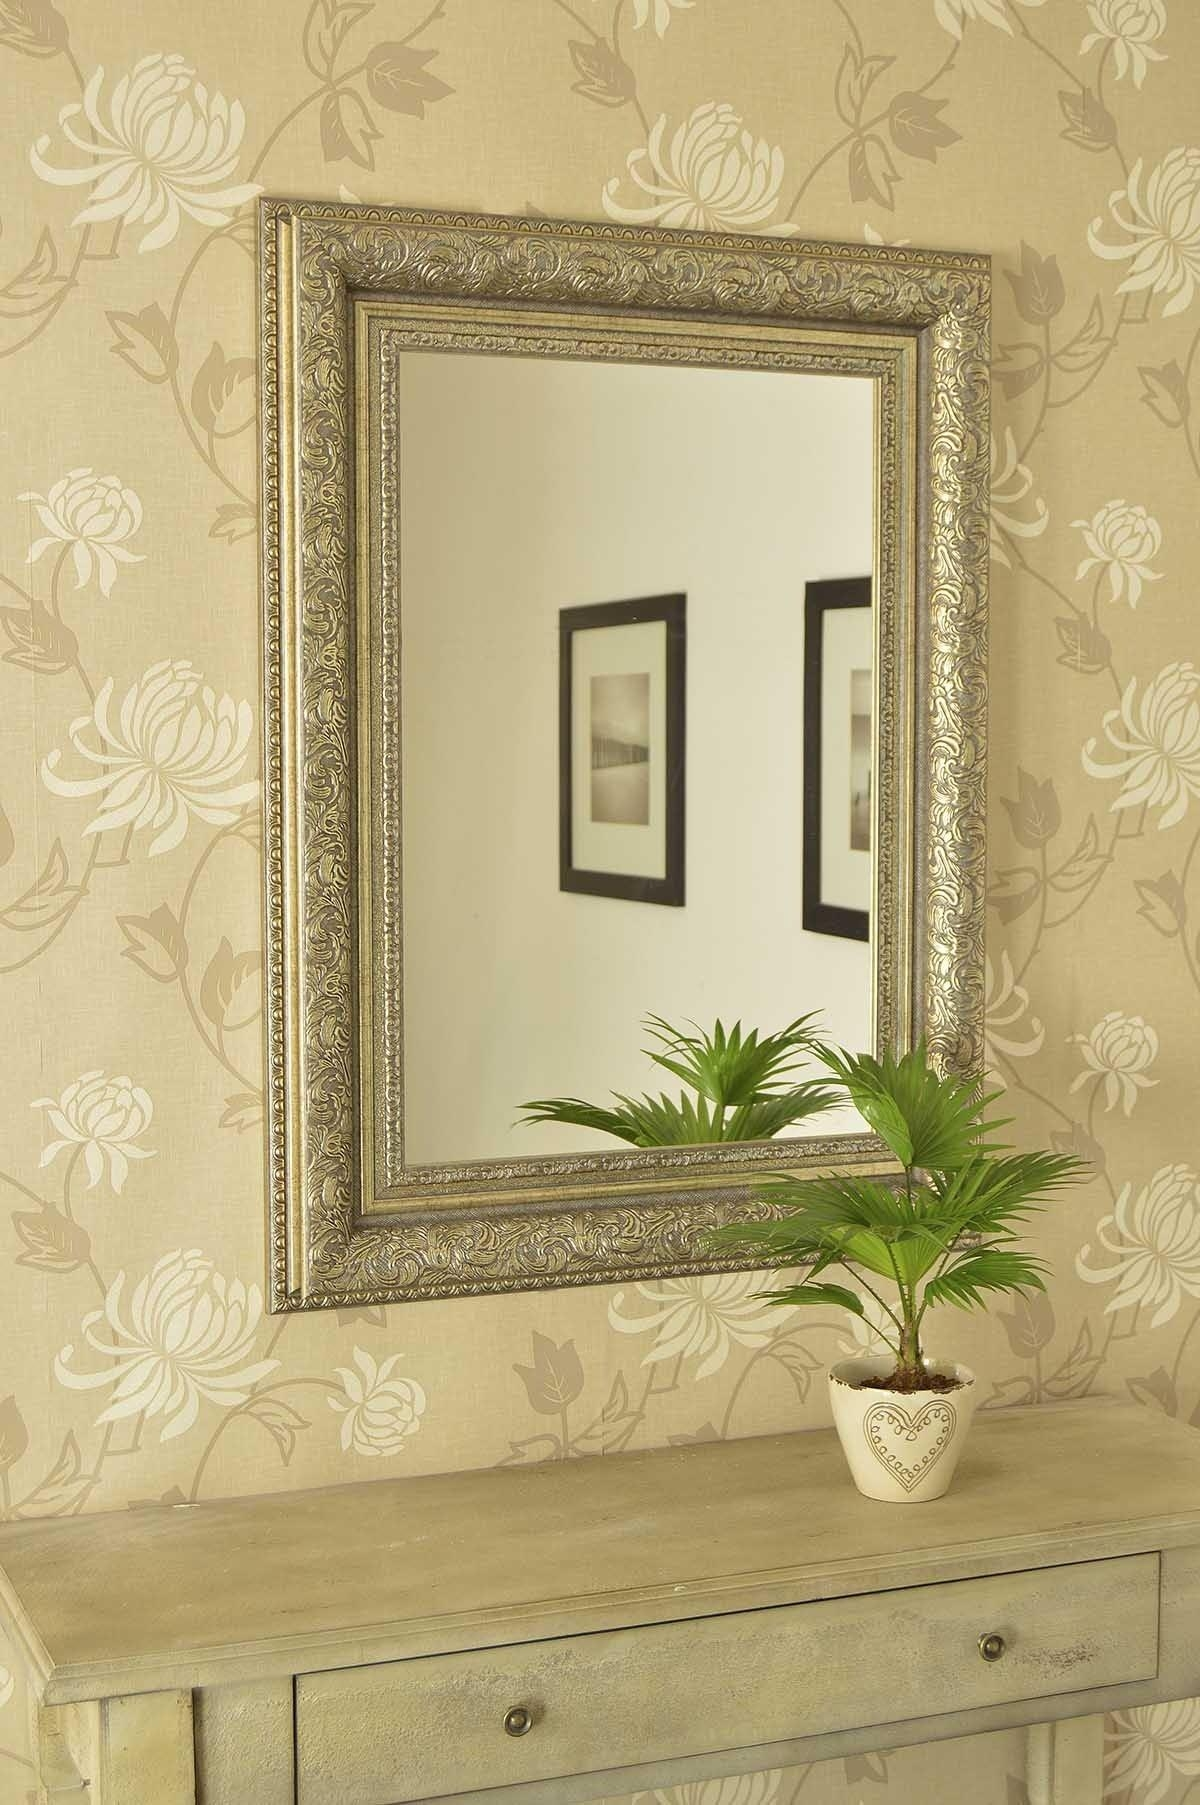 Old Fashioned Wall Mirrors Antique Mirror Wall Covering Vintage Within Antique Cream Wall Mirrors (View 7 of 20)